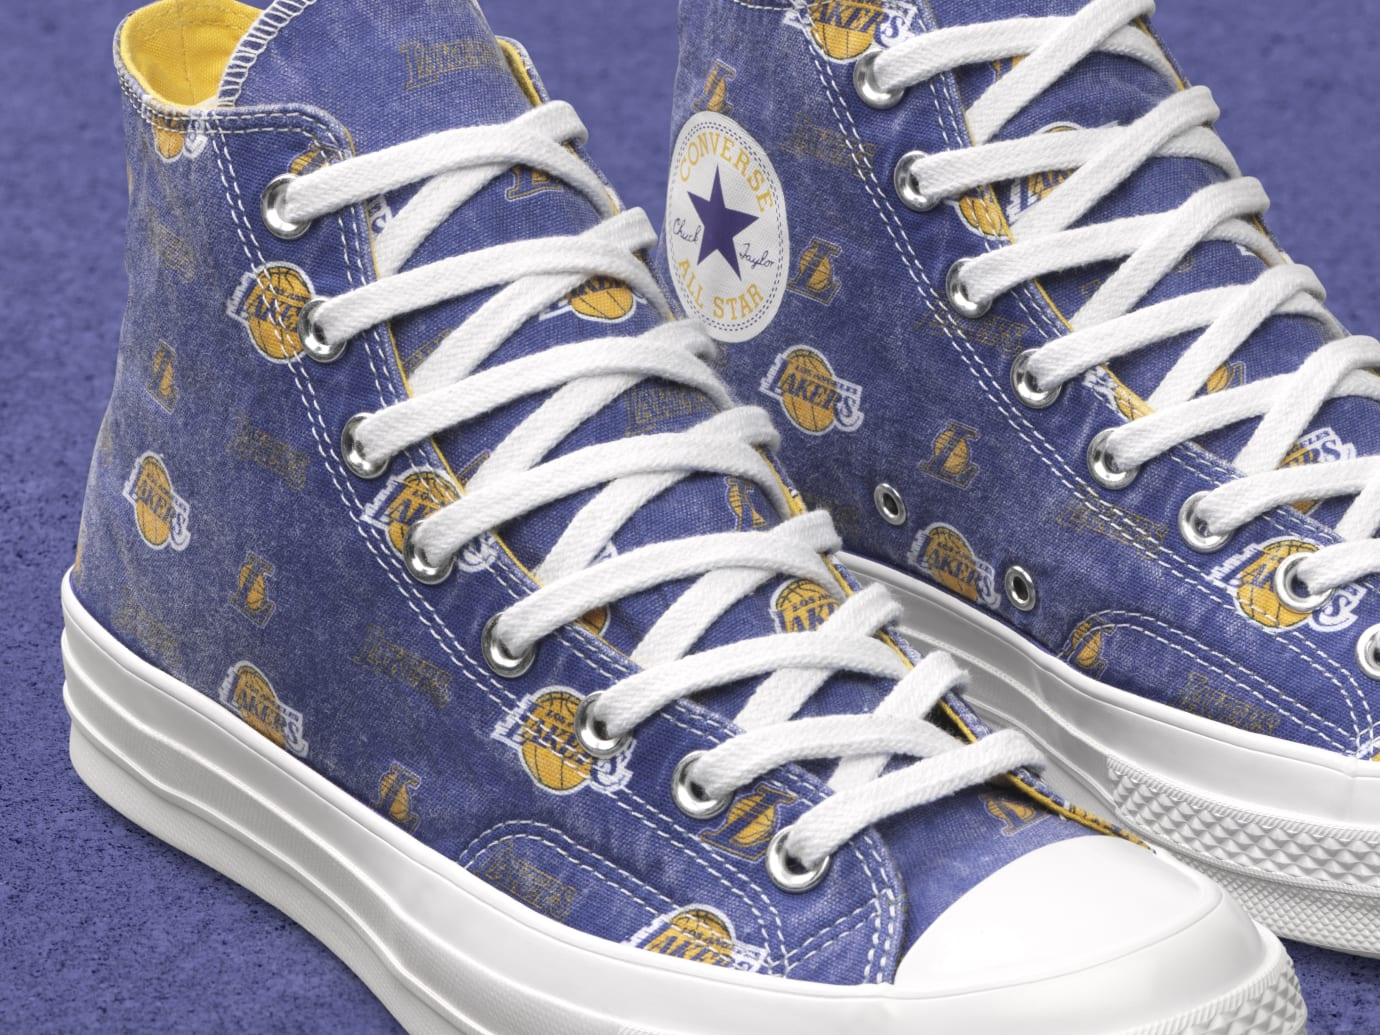 converse x nba city edition 'los angeles lakers'